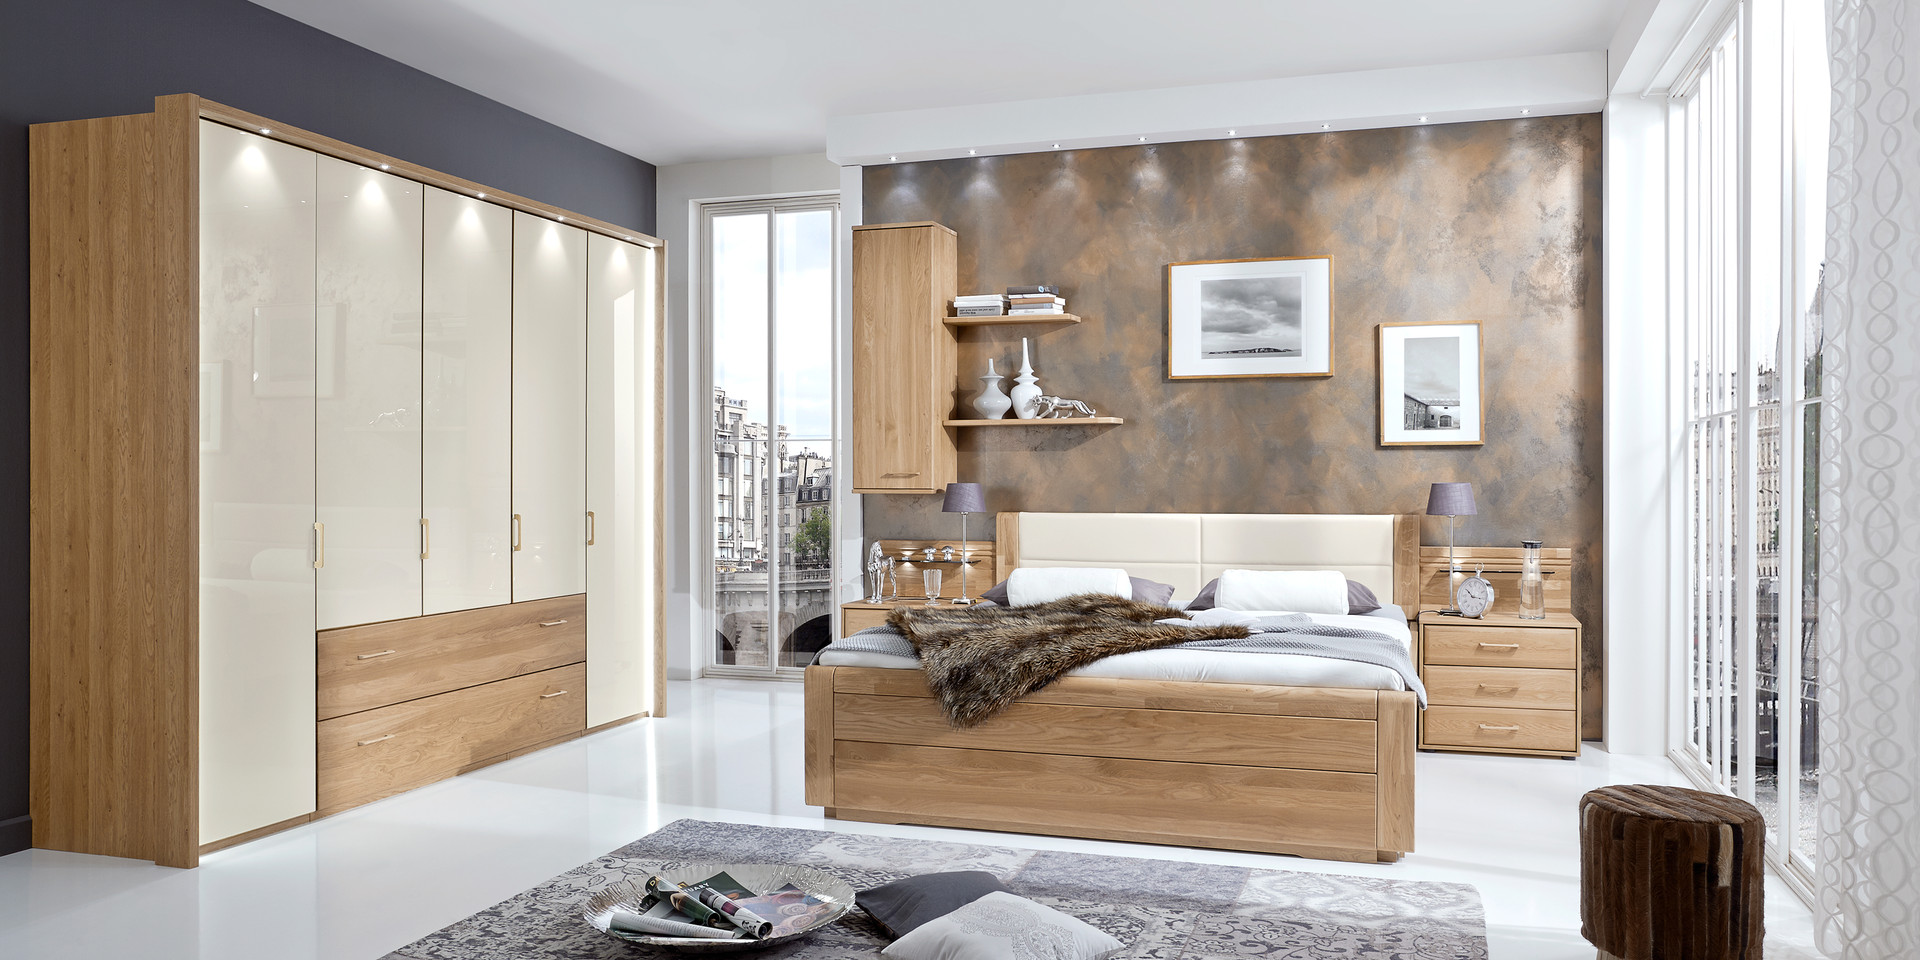 erleben sie das schlafzimmer lido m belhersteller wiemann. Black Bedroom Furniture Sets. Home Design Ideas